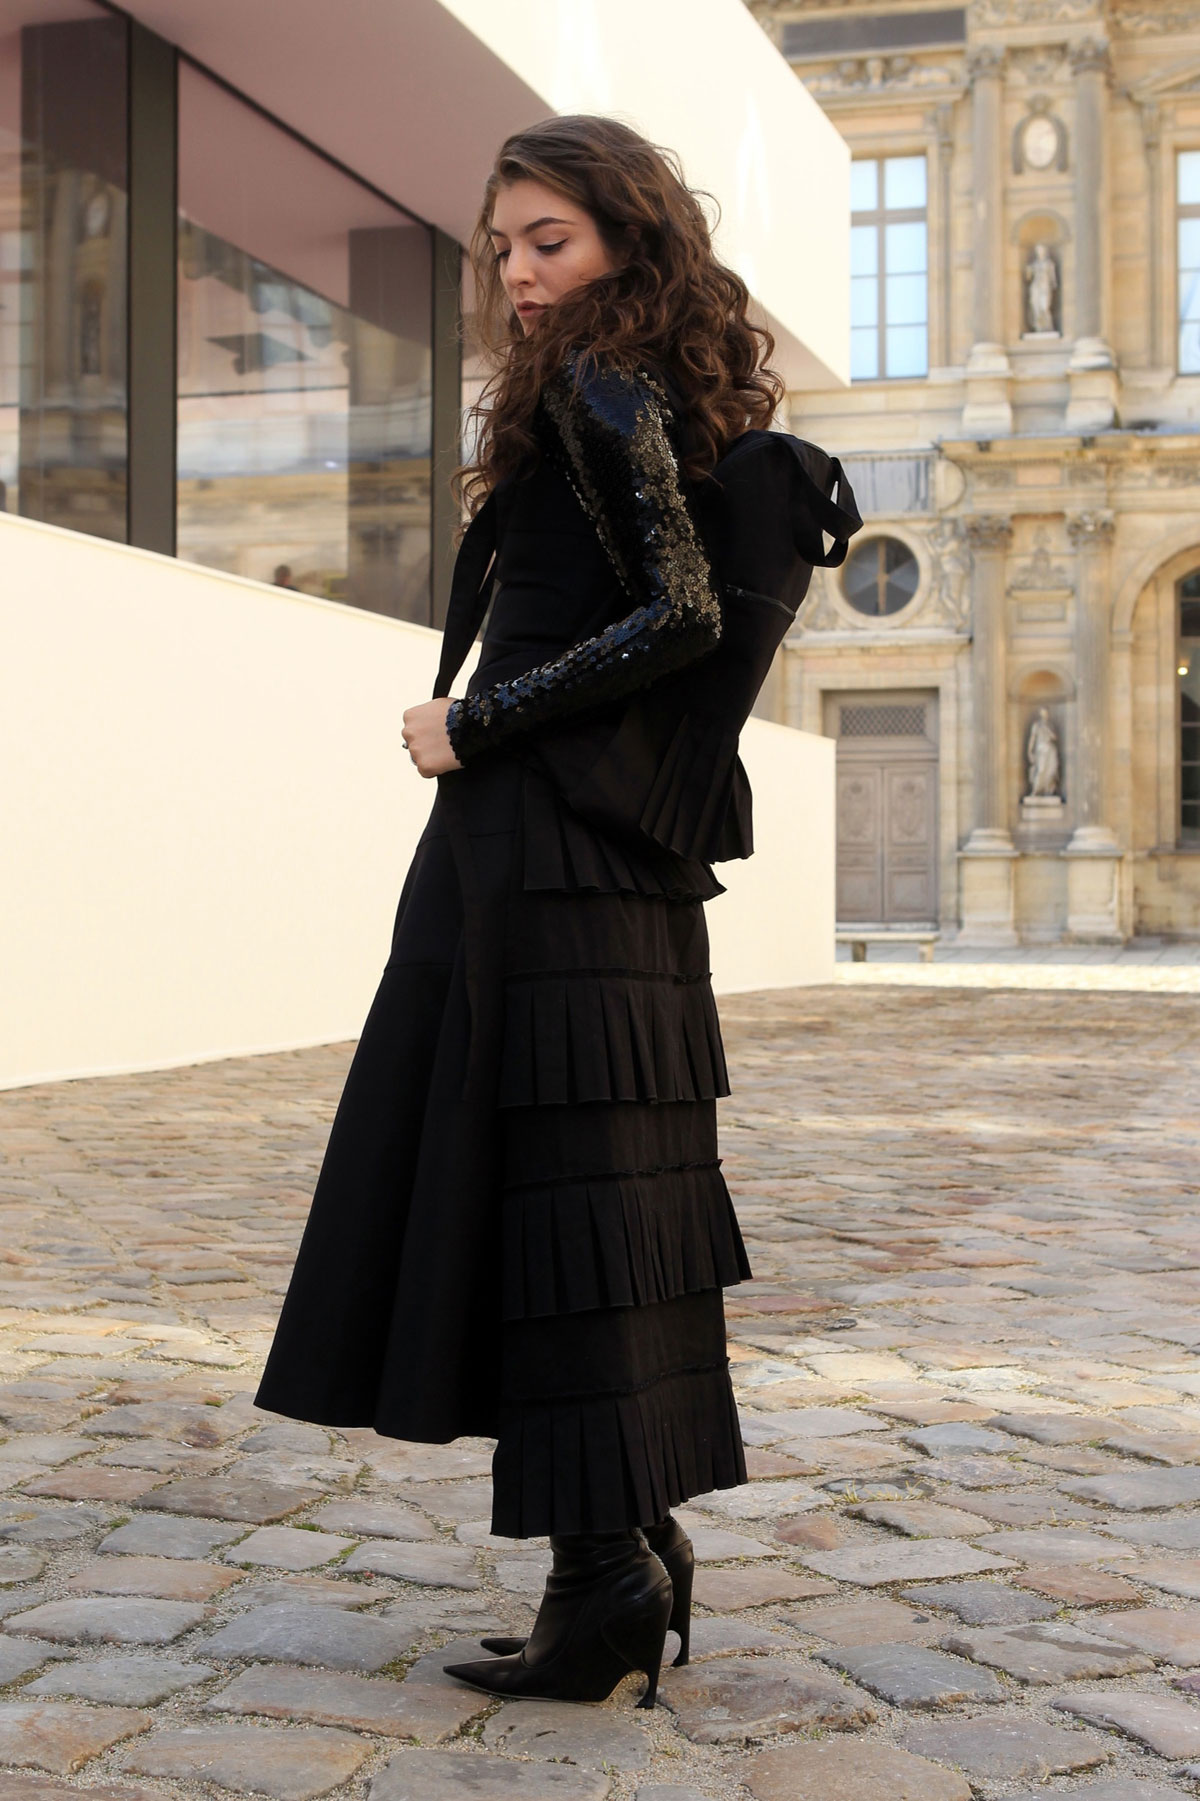 LORDE at Christian Dior Fashion Show in Paris - HawtCelebs